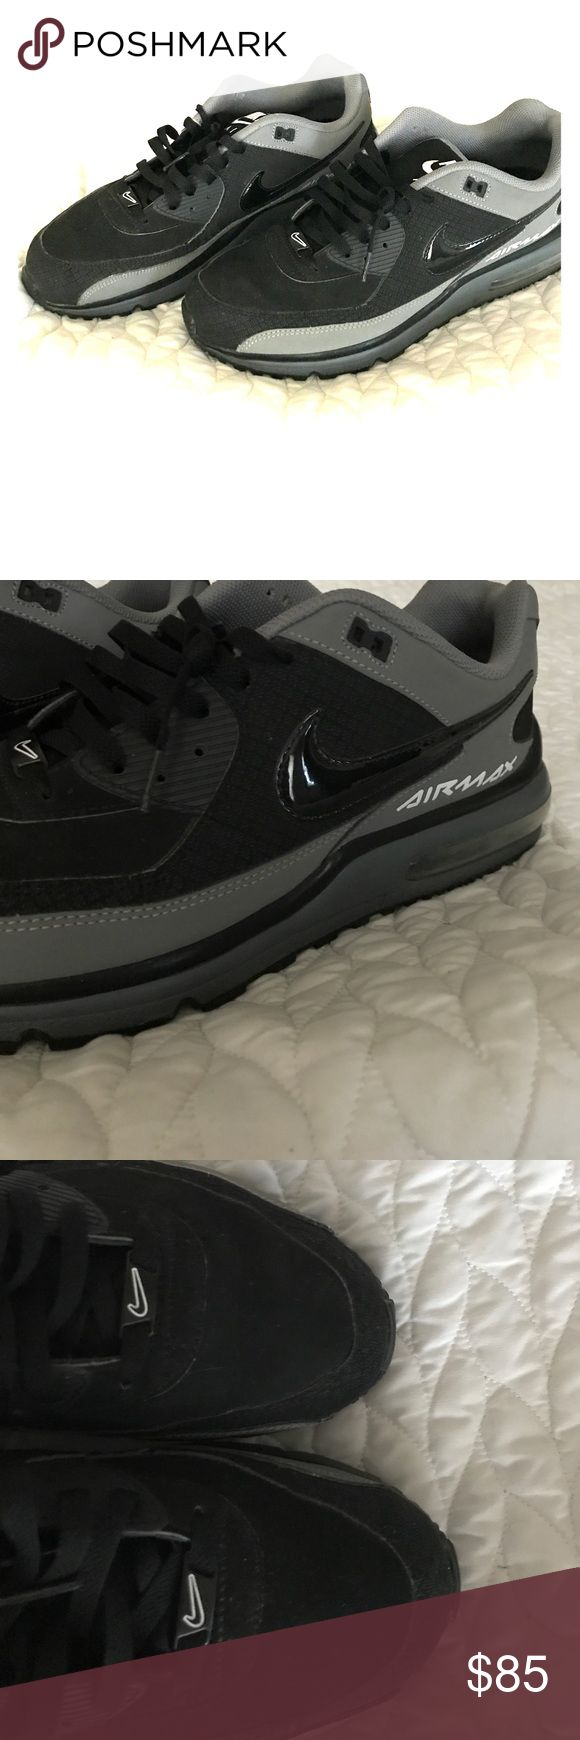 Men's Nike air max size 13 Men's Nike air max wright size 13 like new condition barely worn. Nike Shoes Athletic Shoes